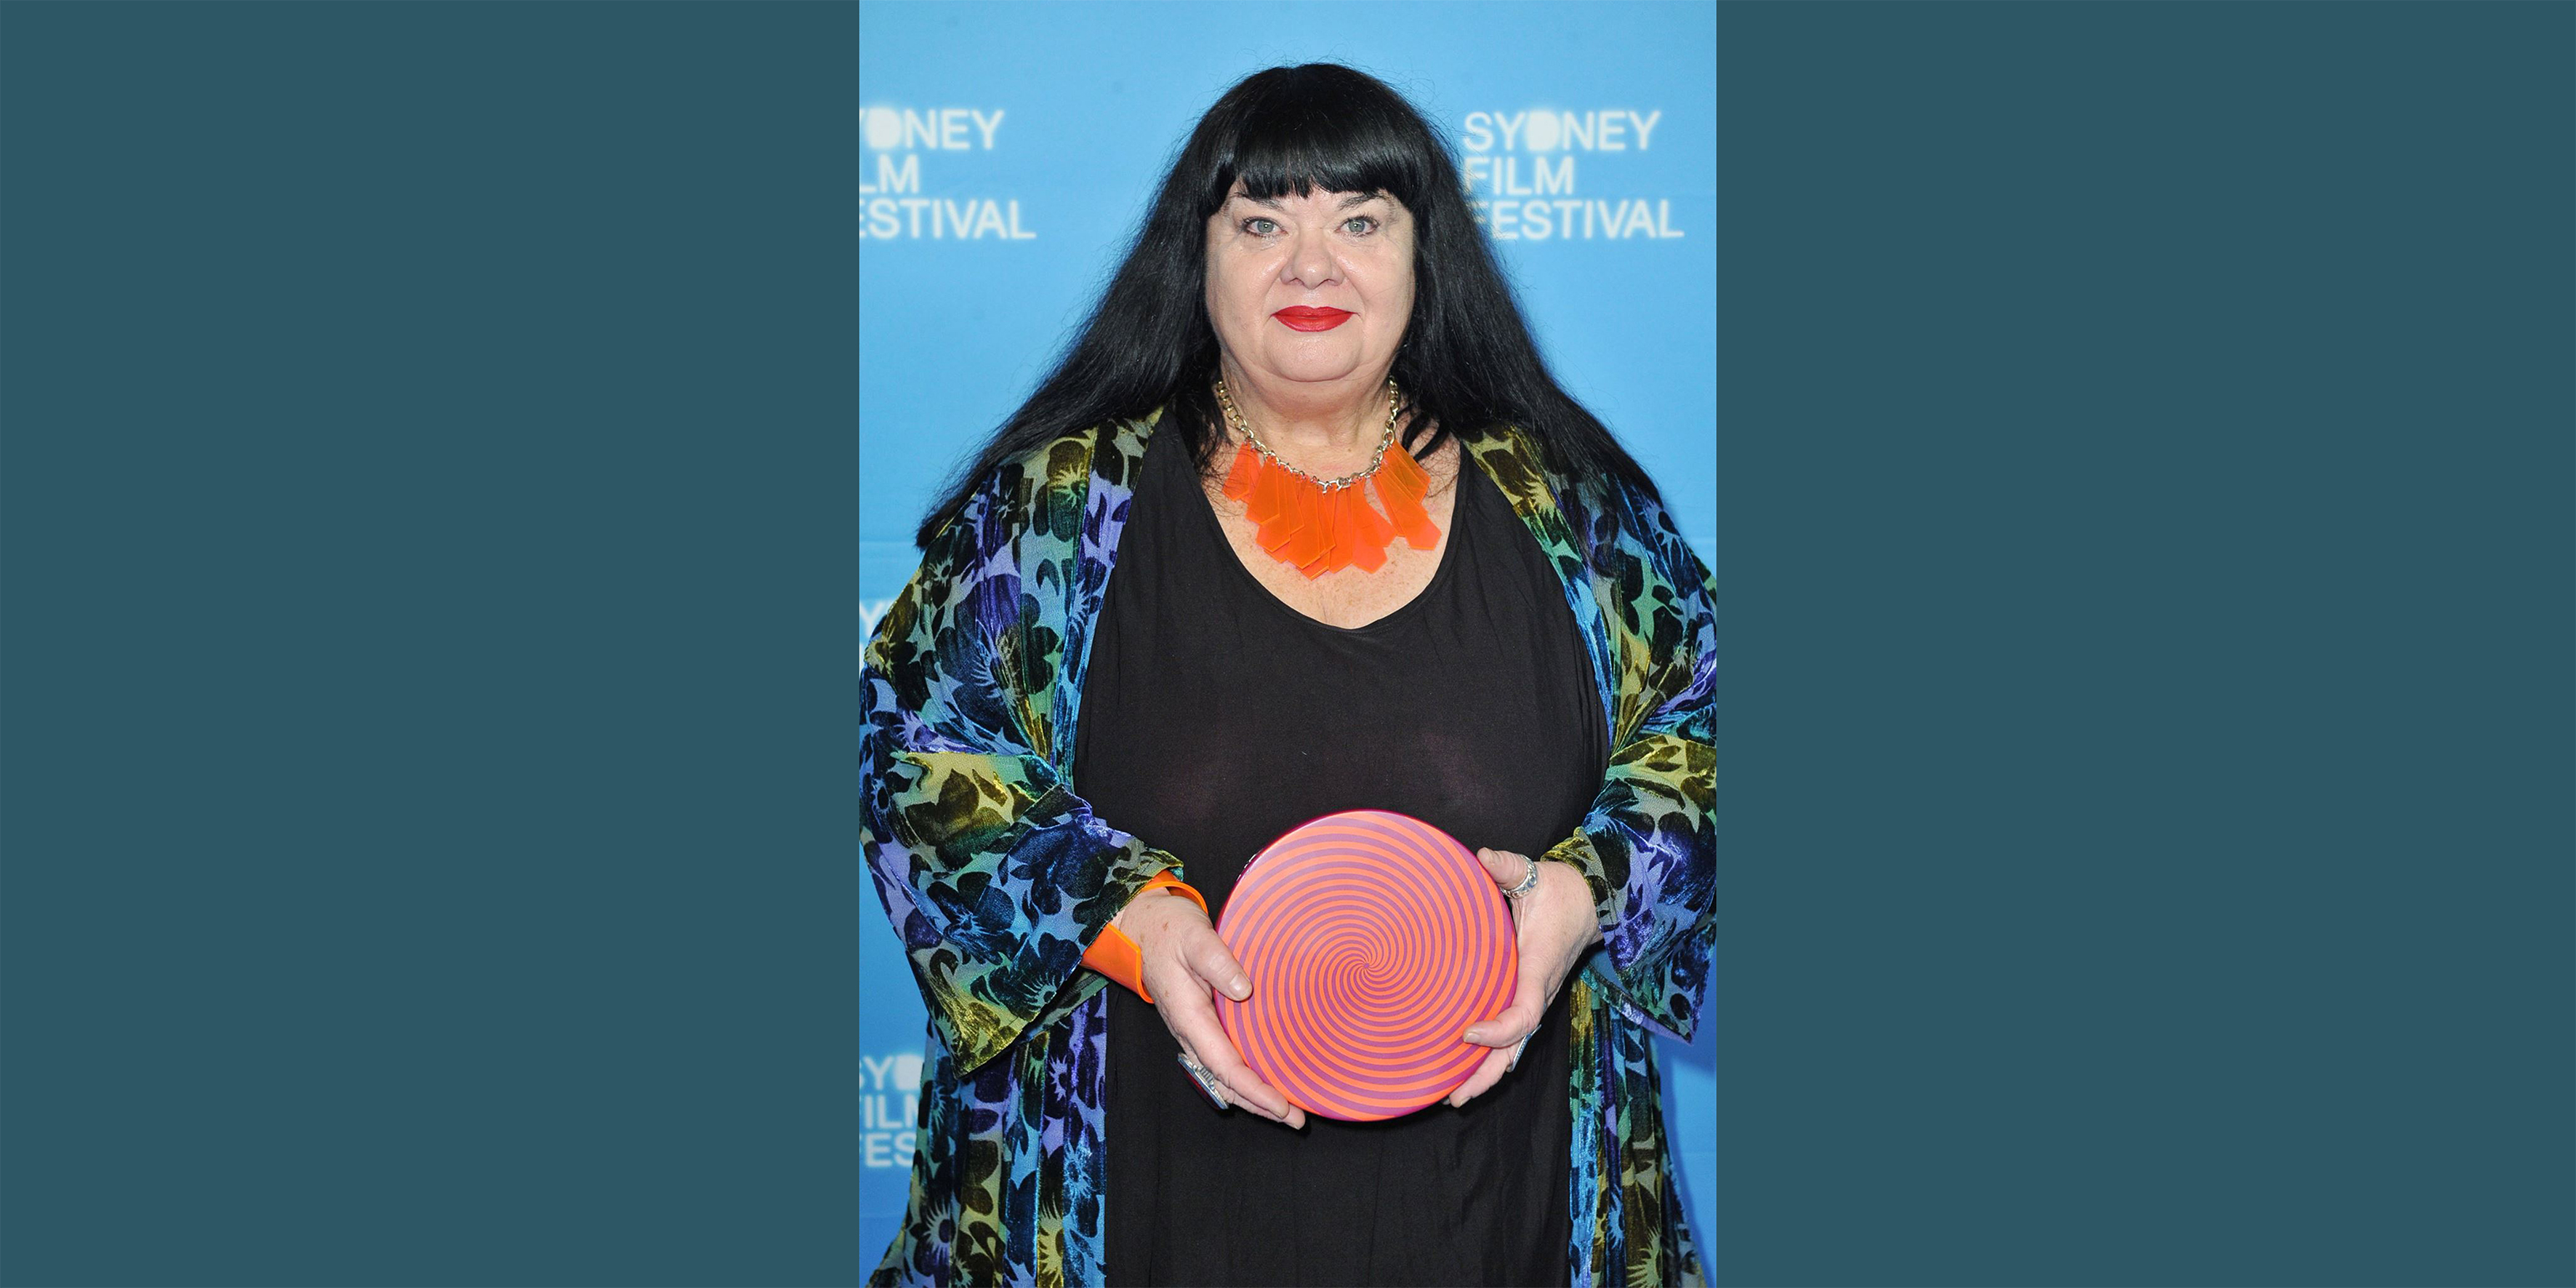 Lynette Wallworth awarded the inaugural Sydney UNESCO City of Film Award, News